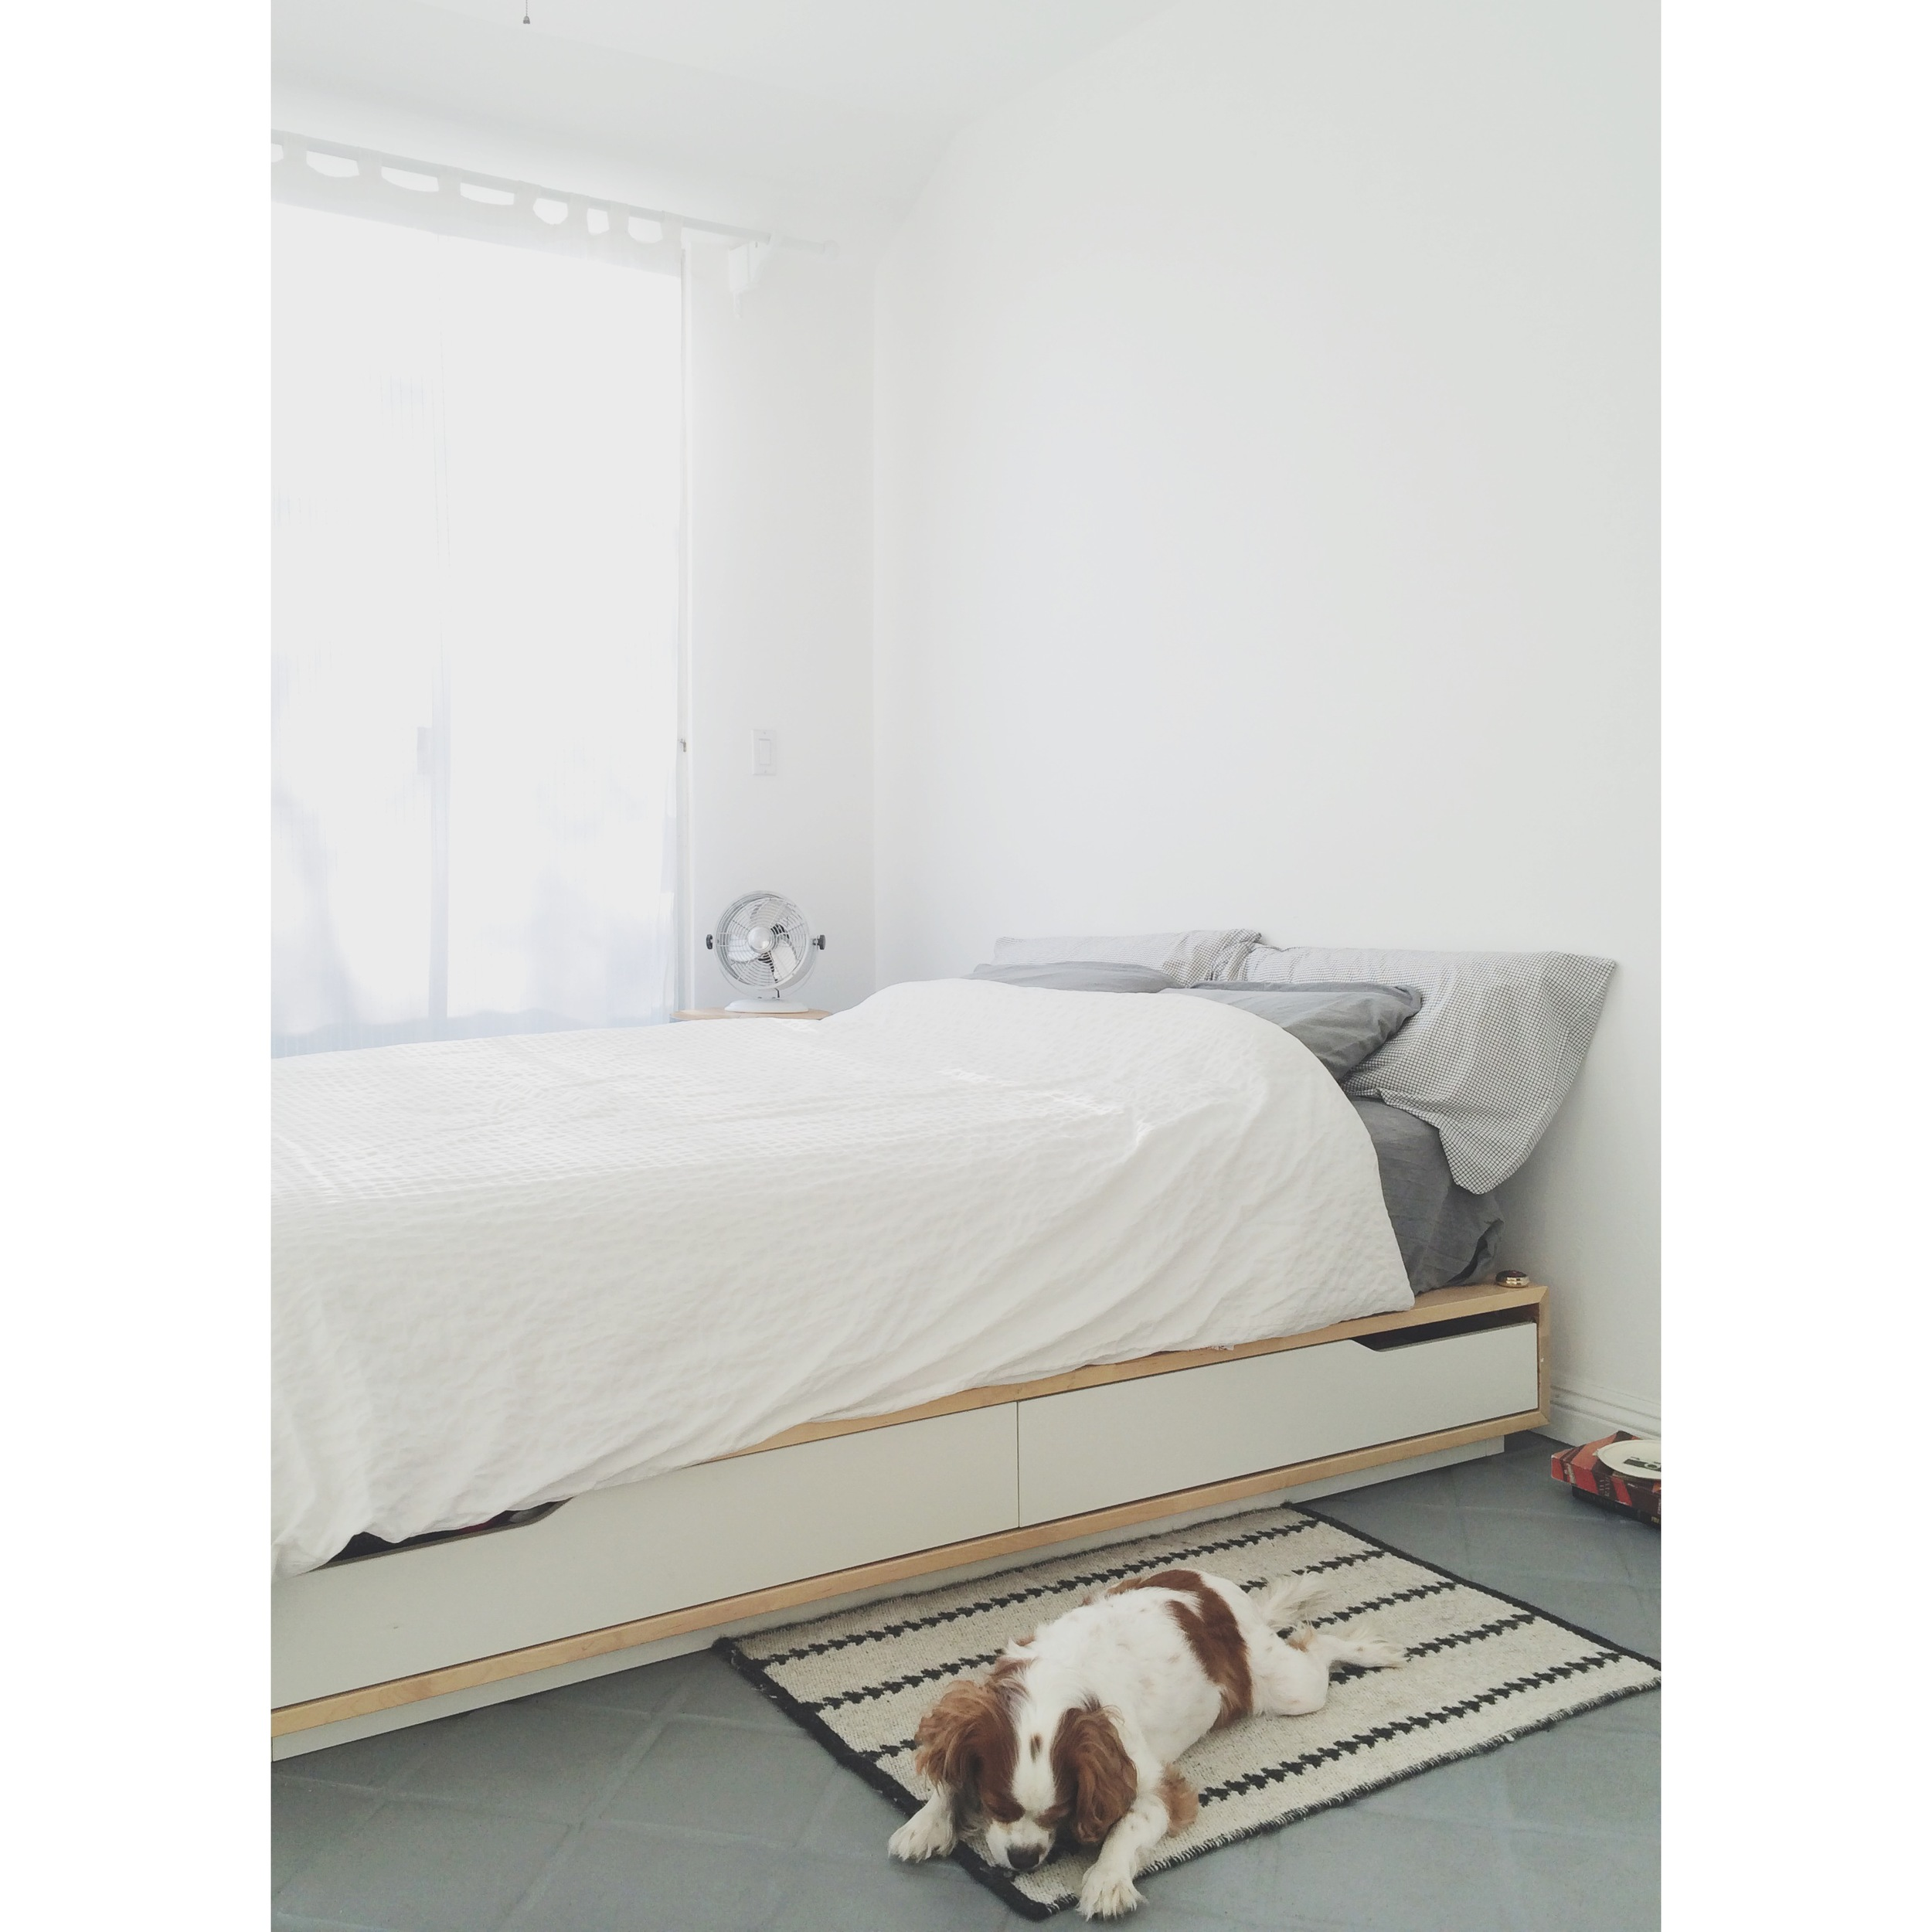 ikea bed frame, scored brand new at a super deal from craigslist